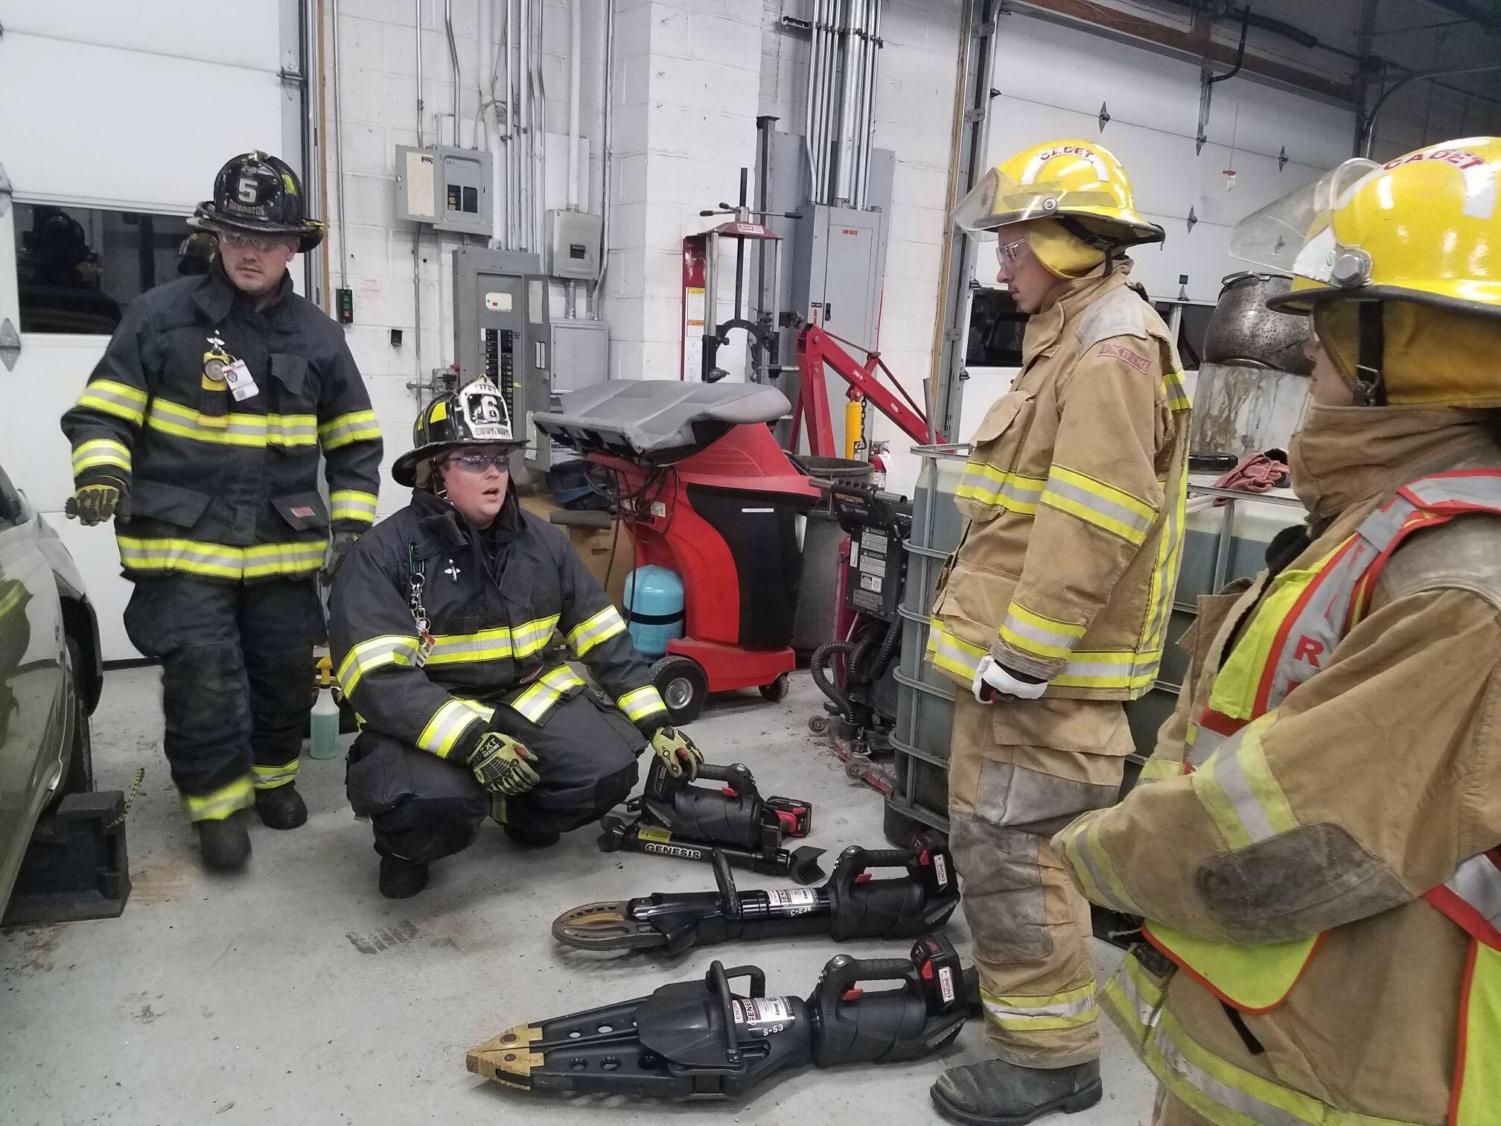 Firefighters in training-- Fire cadets (in black) and firefighters (in tan) prepare for a vehicle extrication drill. The Farmington Fire Cadets is a program that trains prospective high schoolers interested in a firefighting career.